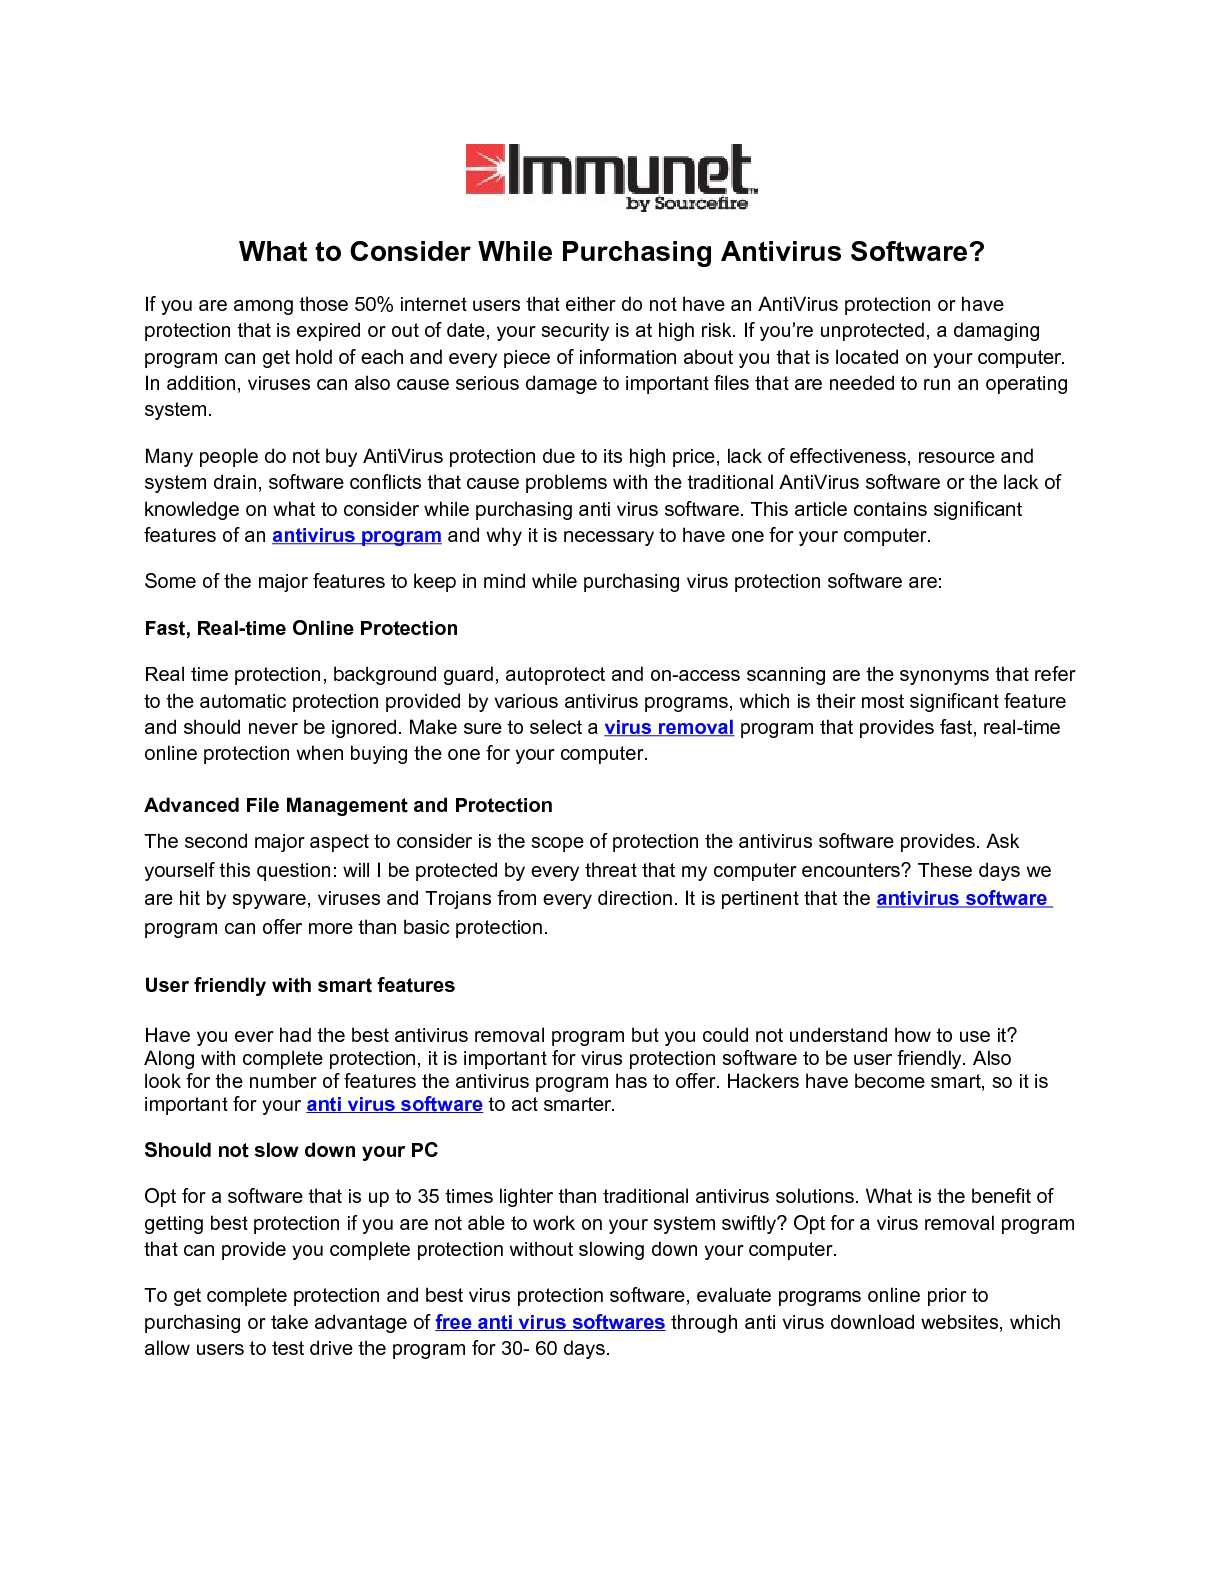 Calaméo - What to Consider While Purchasing Antivirus Software?